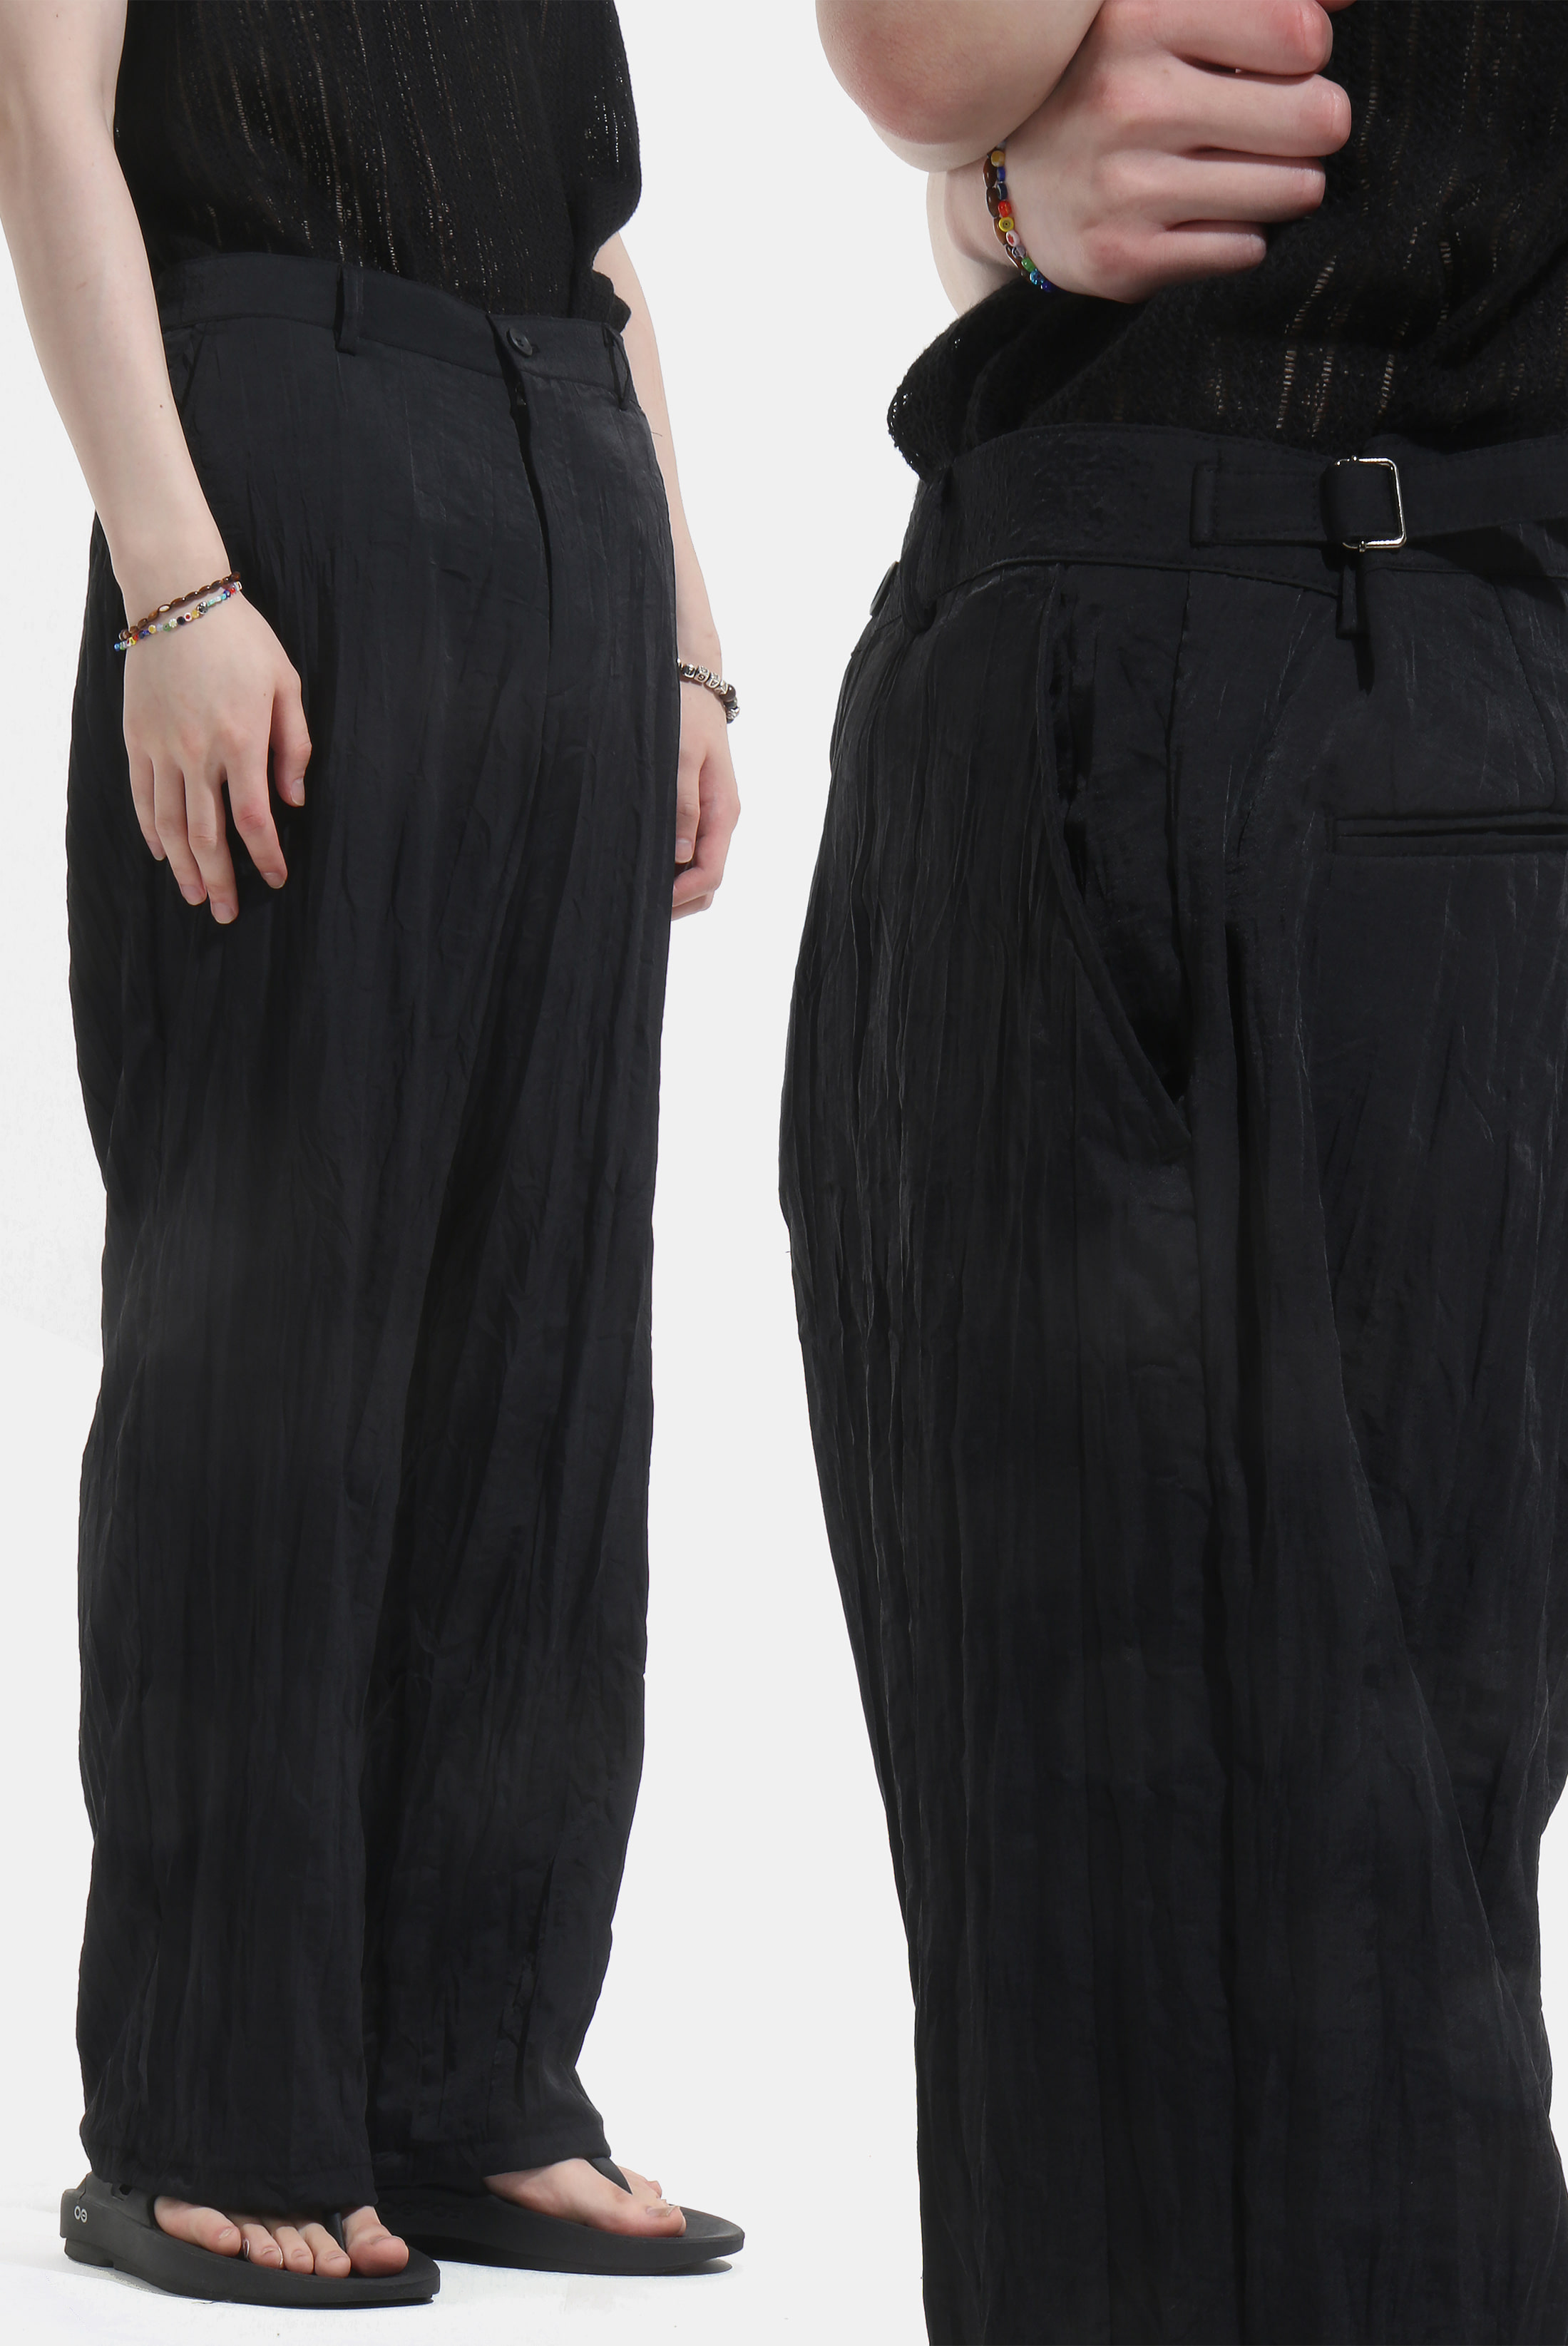 Wrinkle_Tab Nylon Slacks